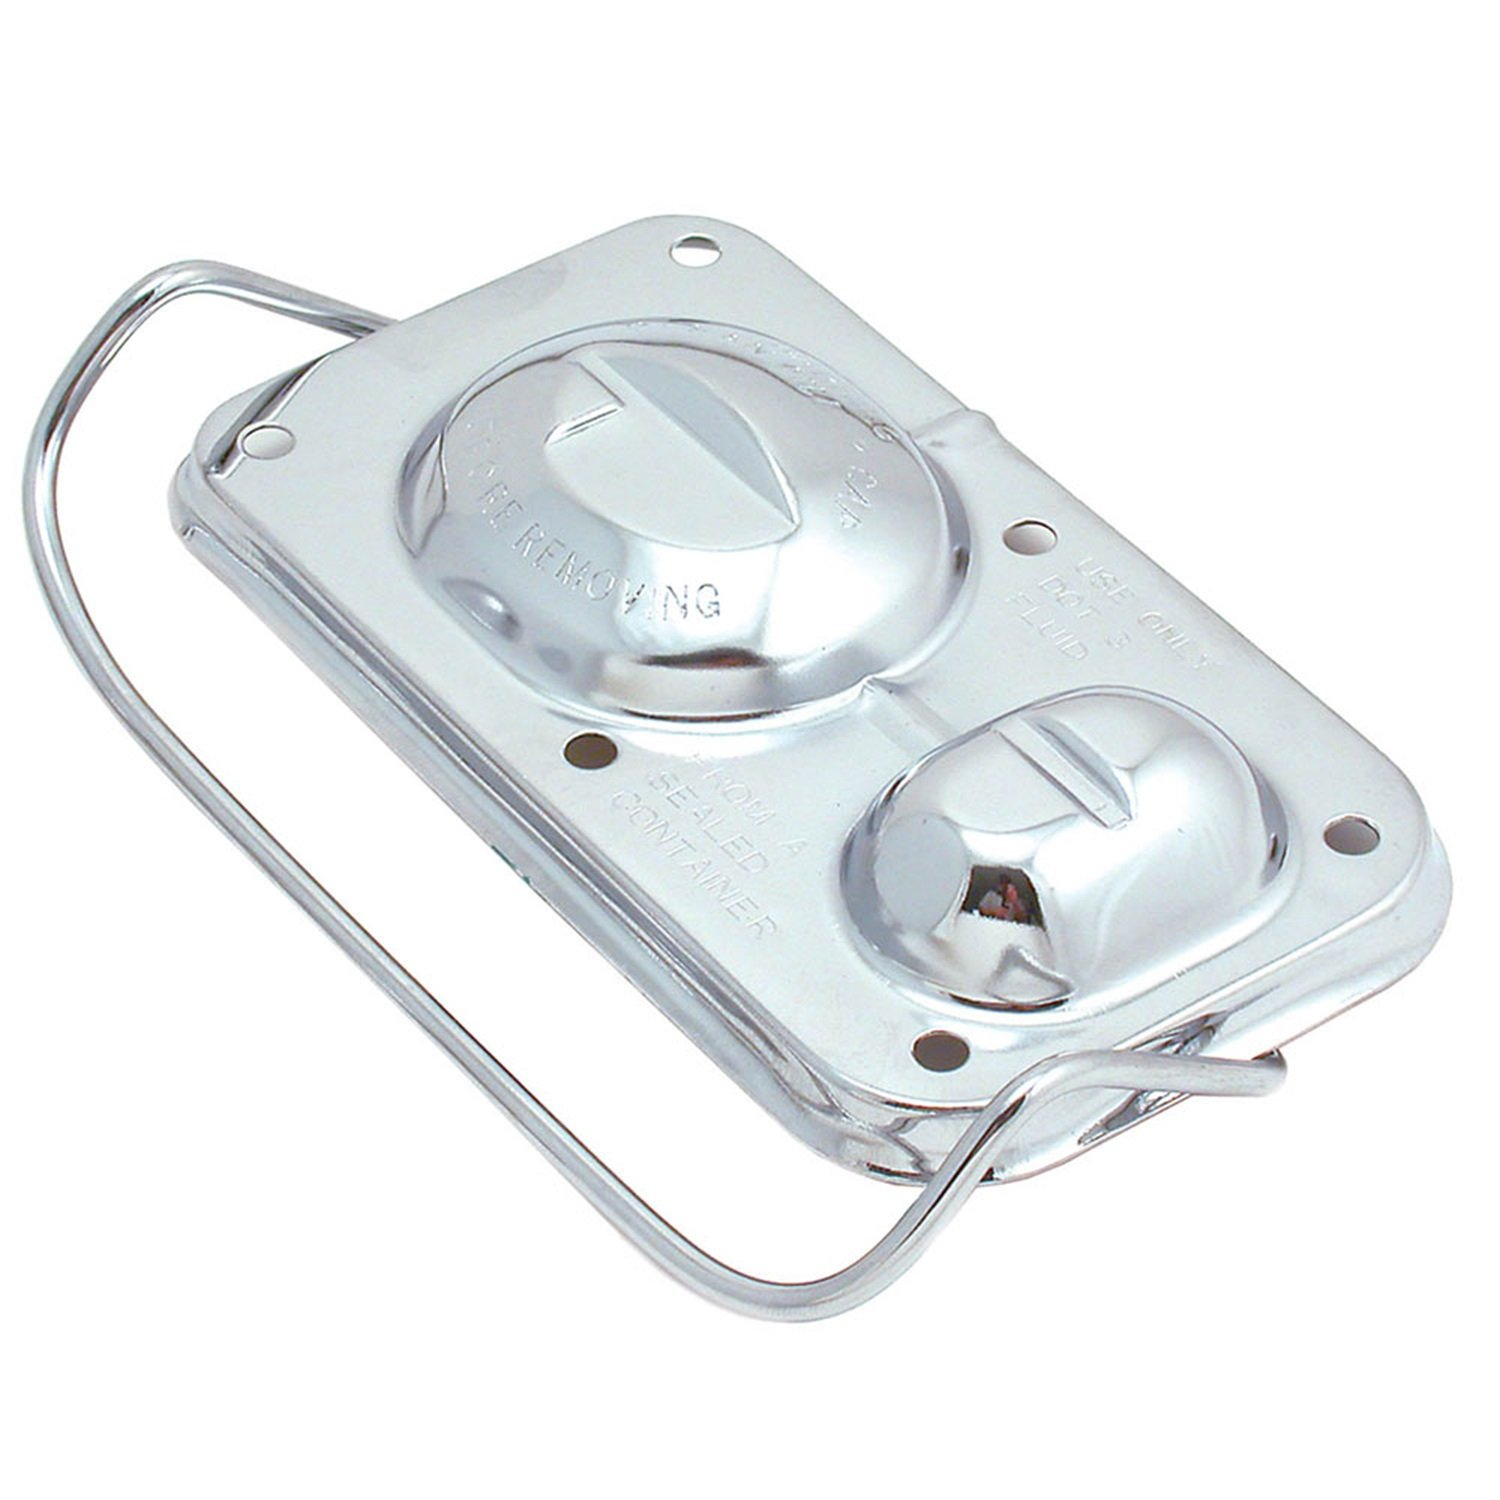 Spectre Performance 4222 3 Master Cylinder Cover